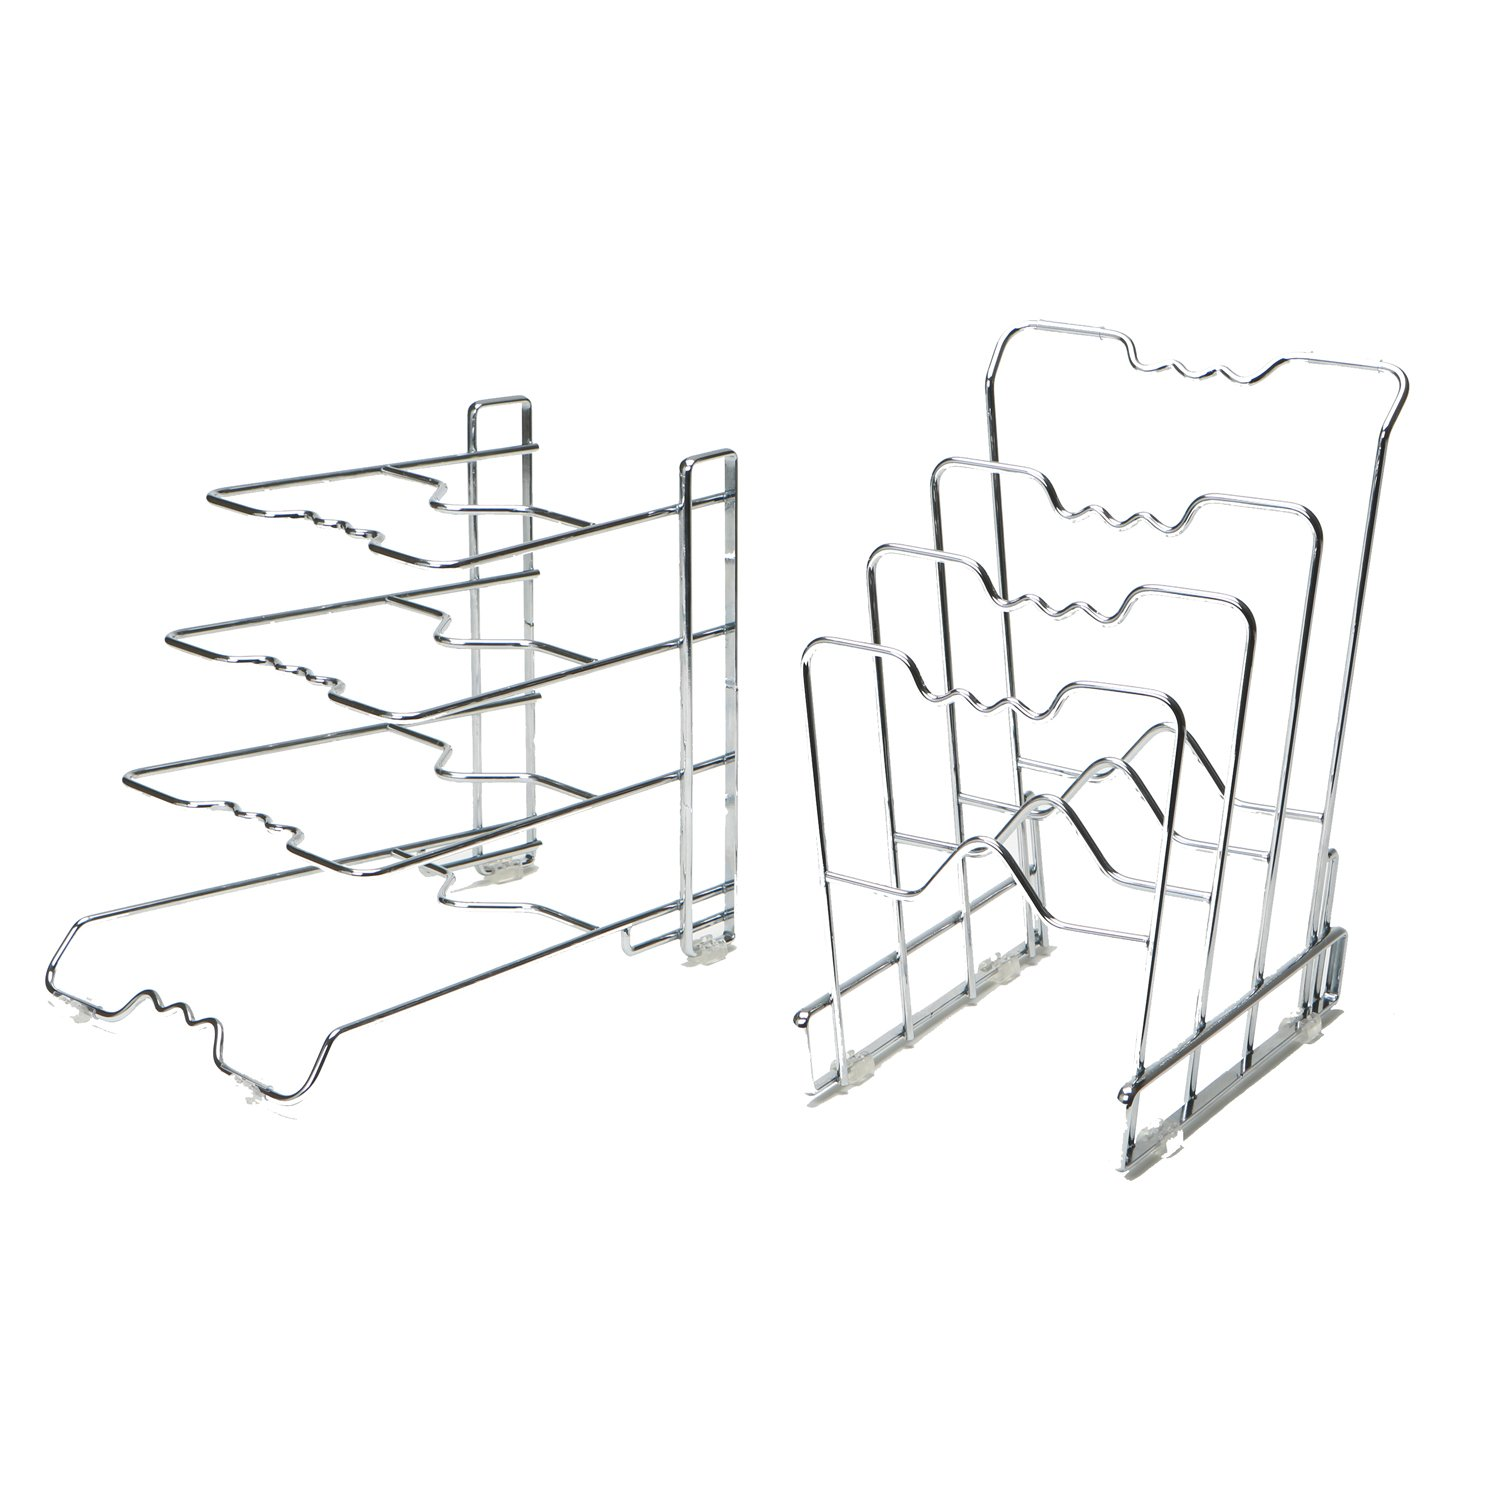 Seville Classics 4-Tier Pan Organizer Rack, Chrome (2-Pack) SHE14108